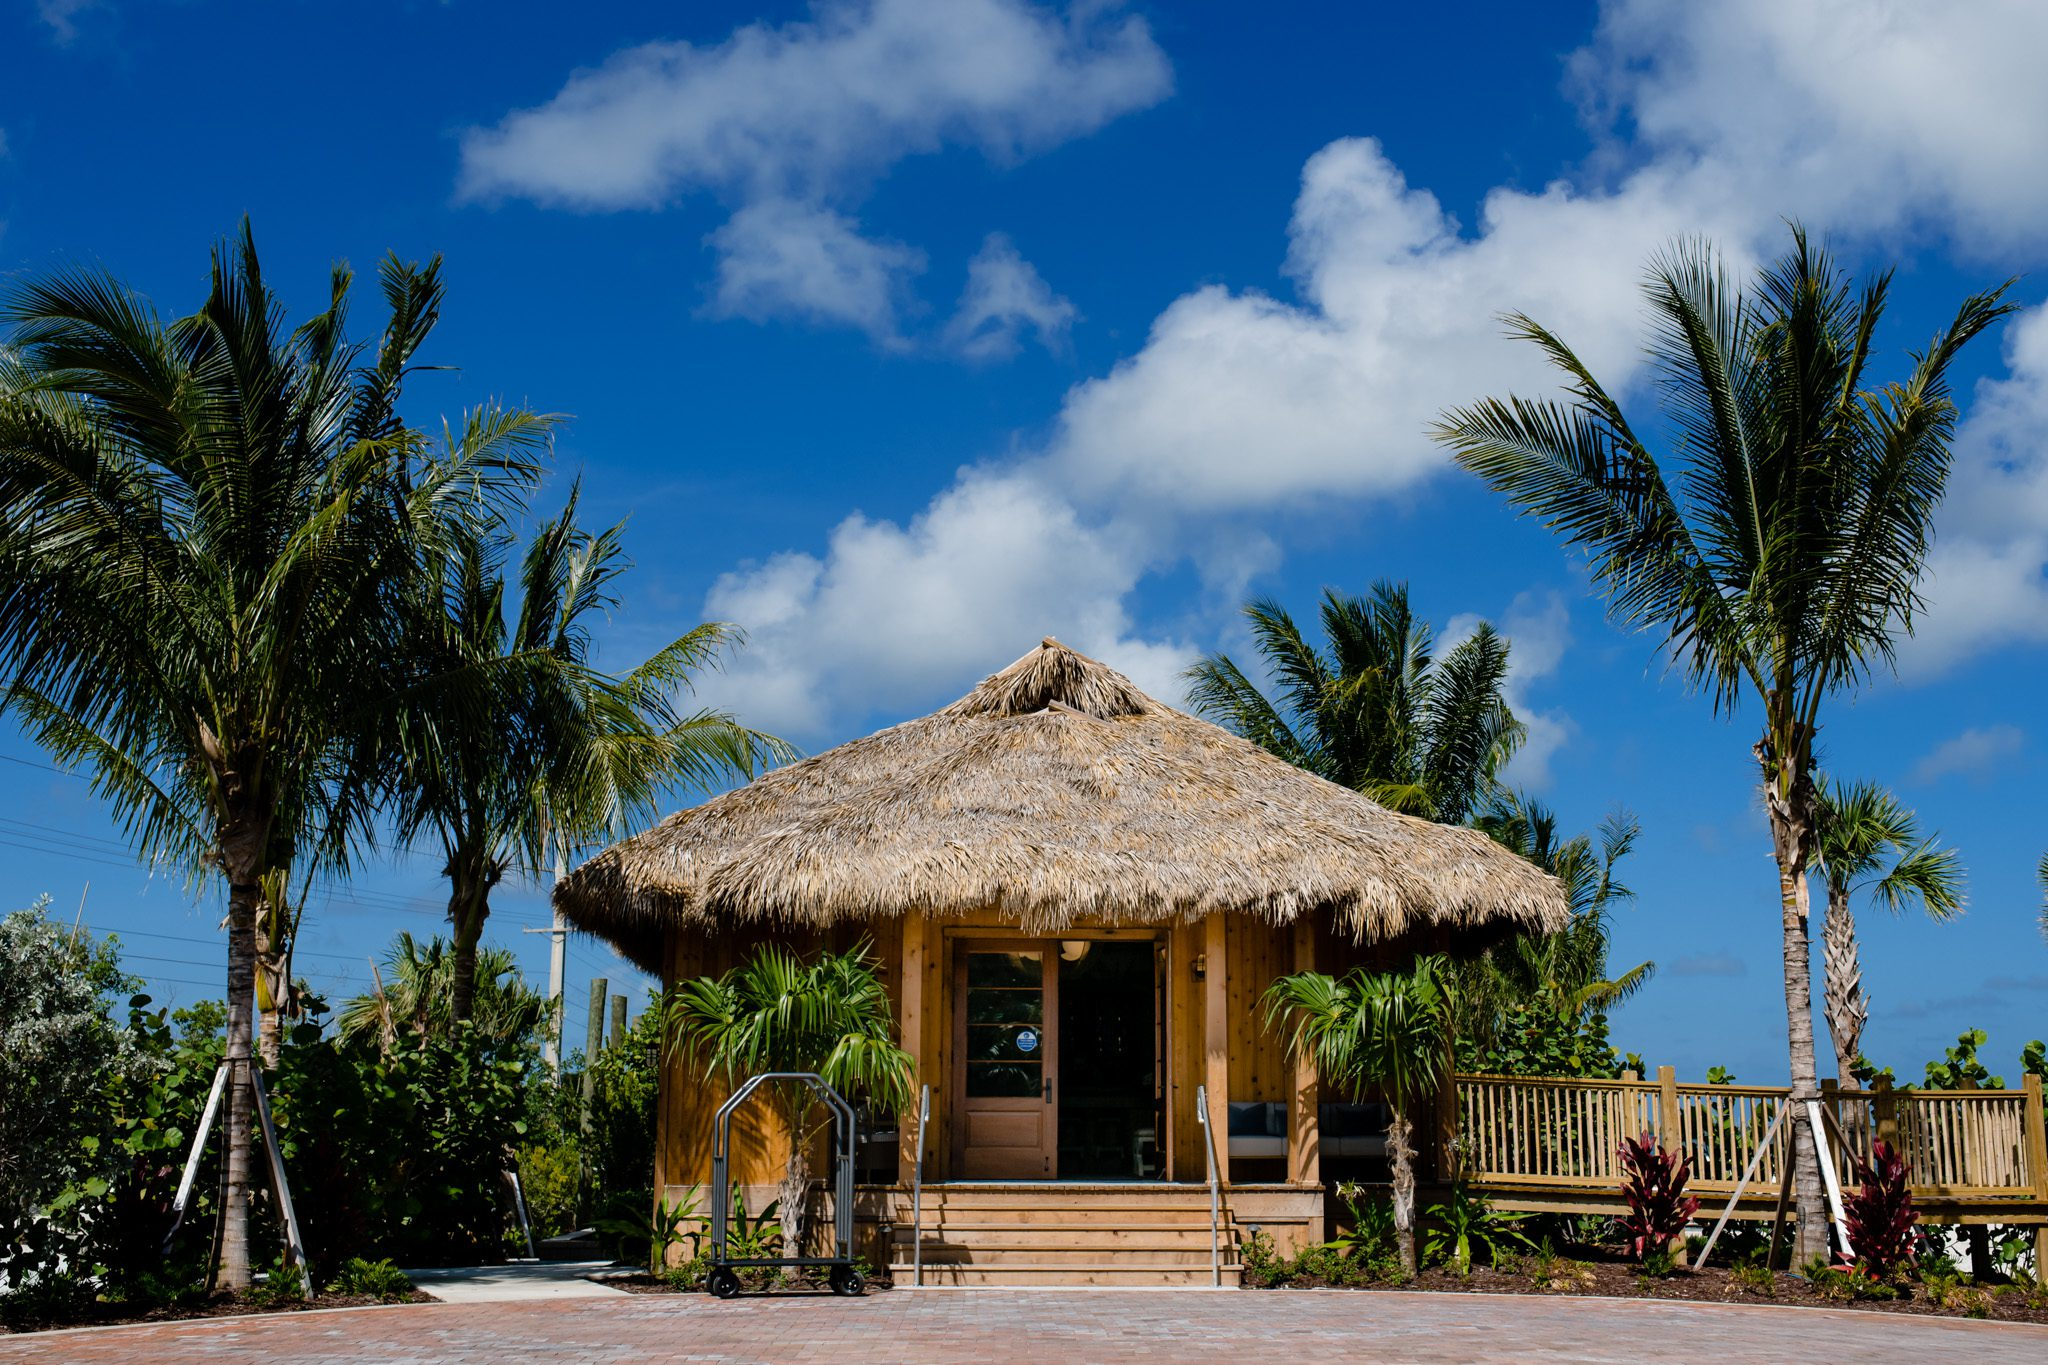 straw hut surrounded by palm trees on palm island in key west